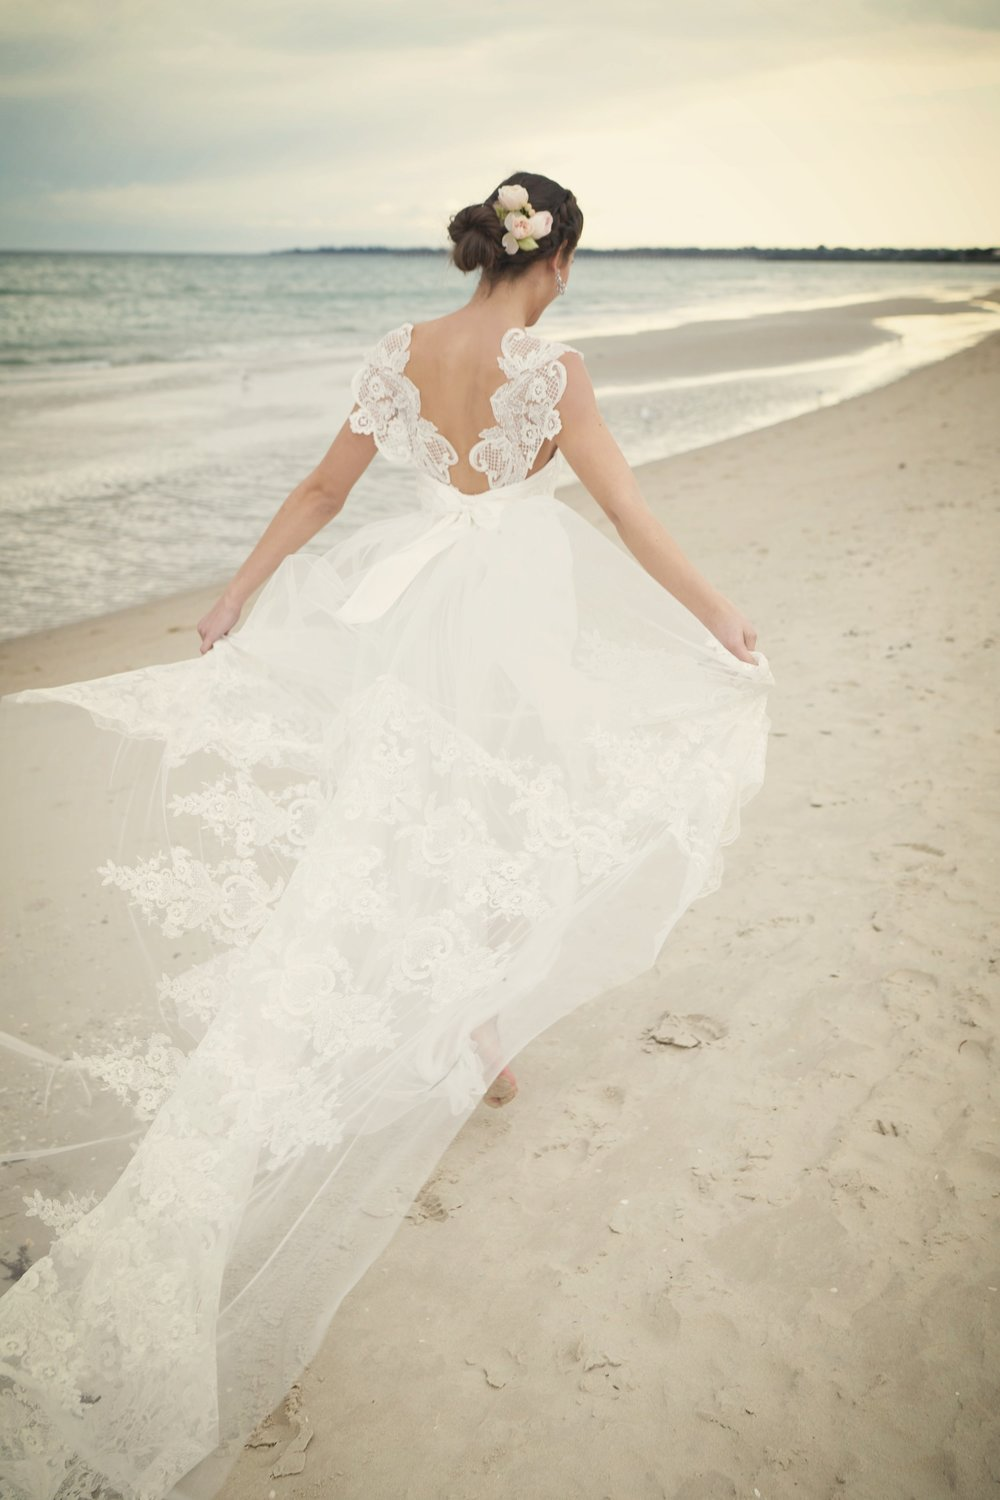 Anna Campbell Bridal Savannah Wedding Dress | Vintage Inspired Bridal Gown with Unique Lace Back Details